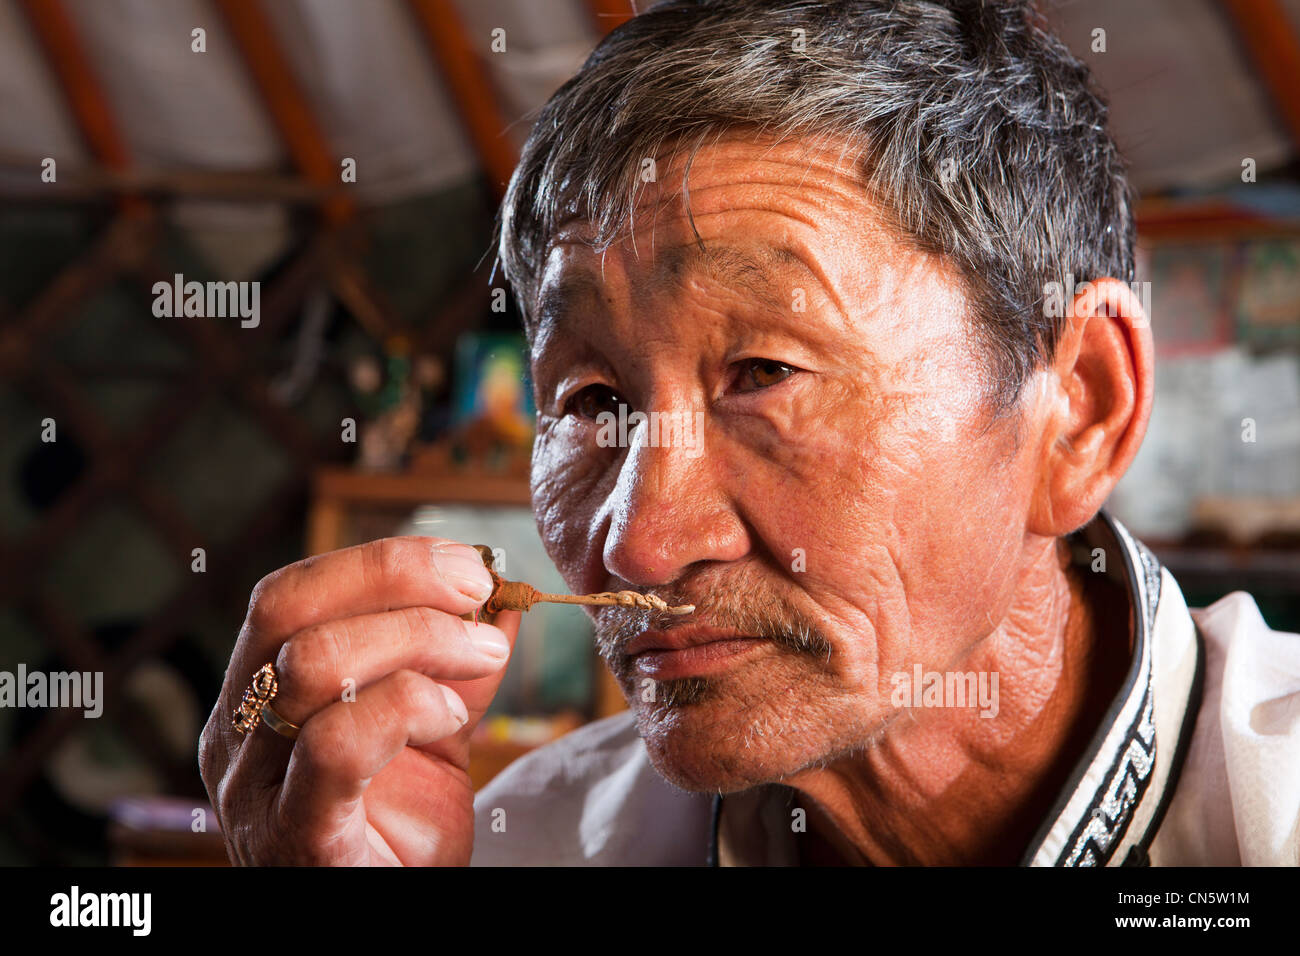 mongolian-man-smelling-traditional-aroma